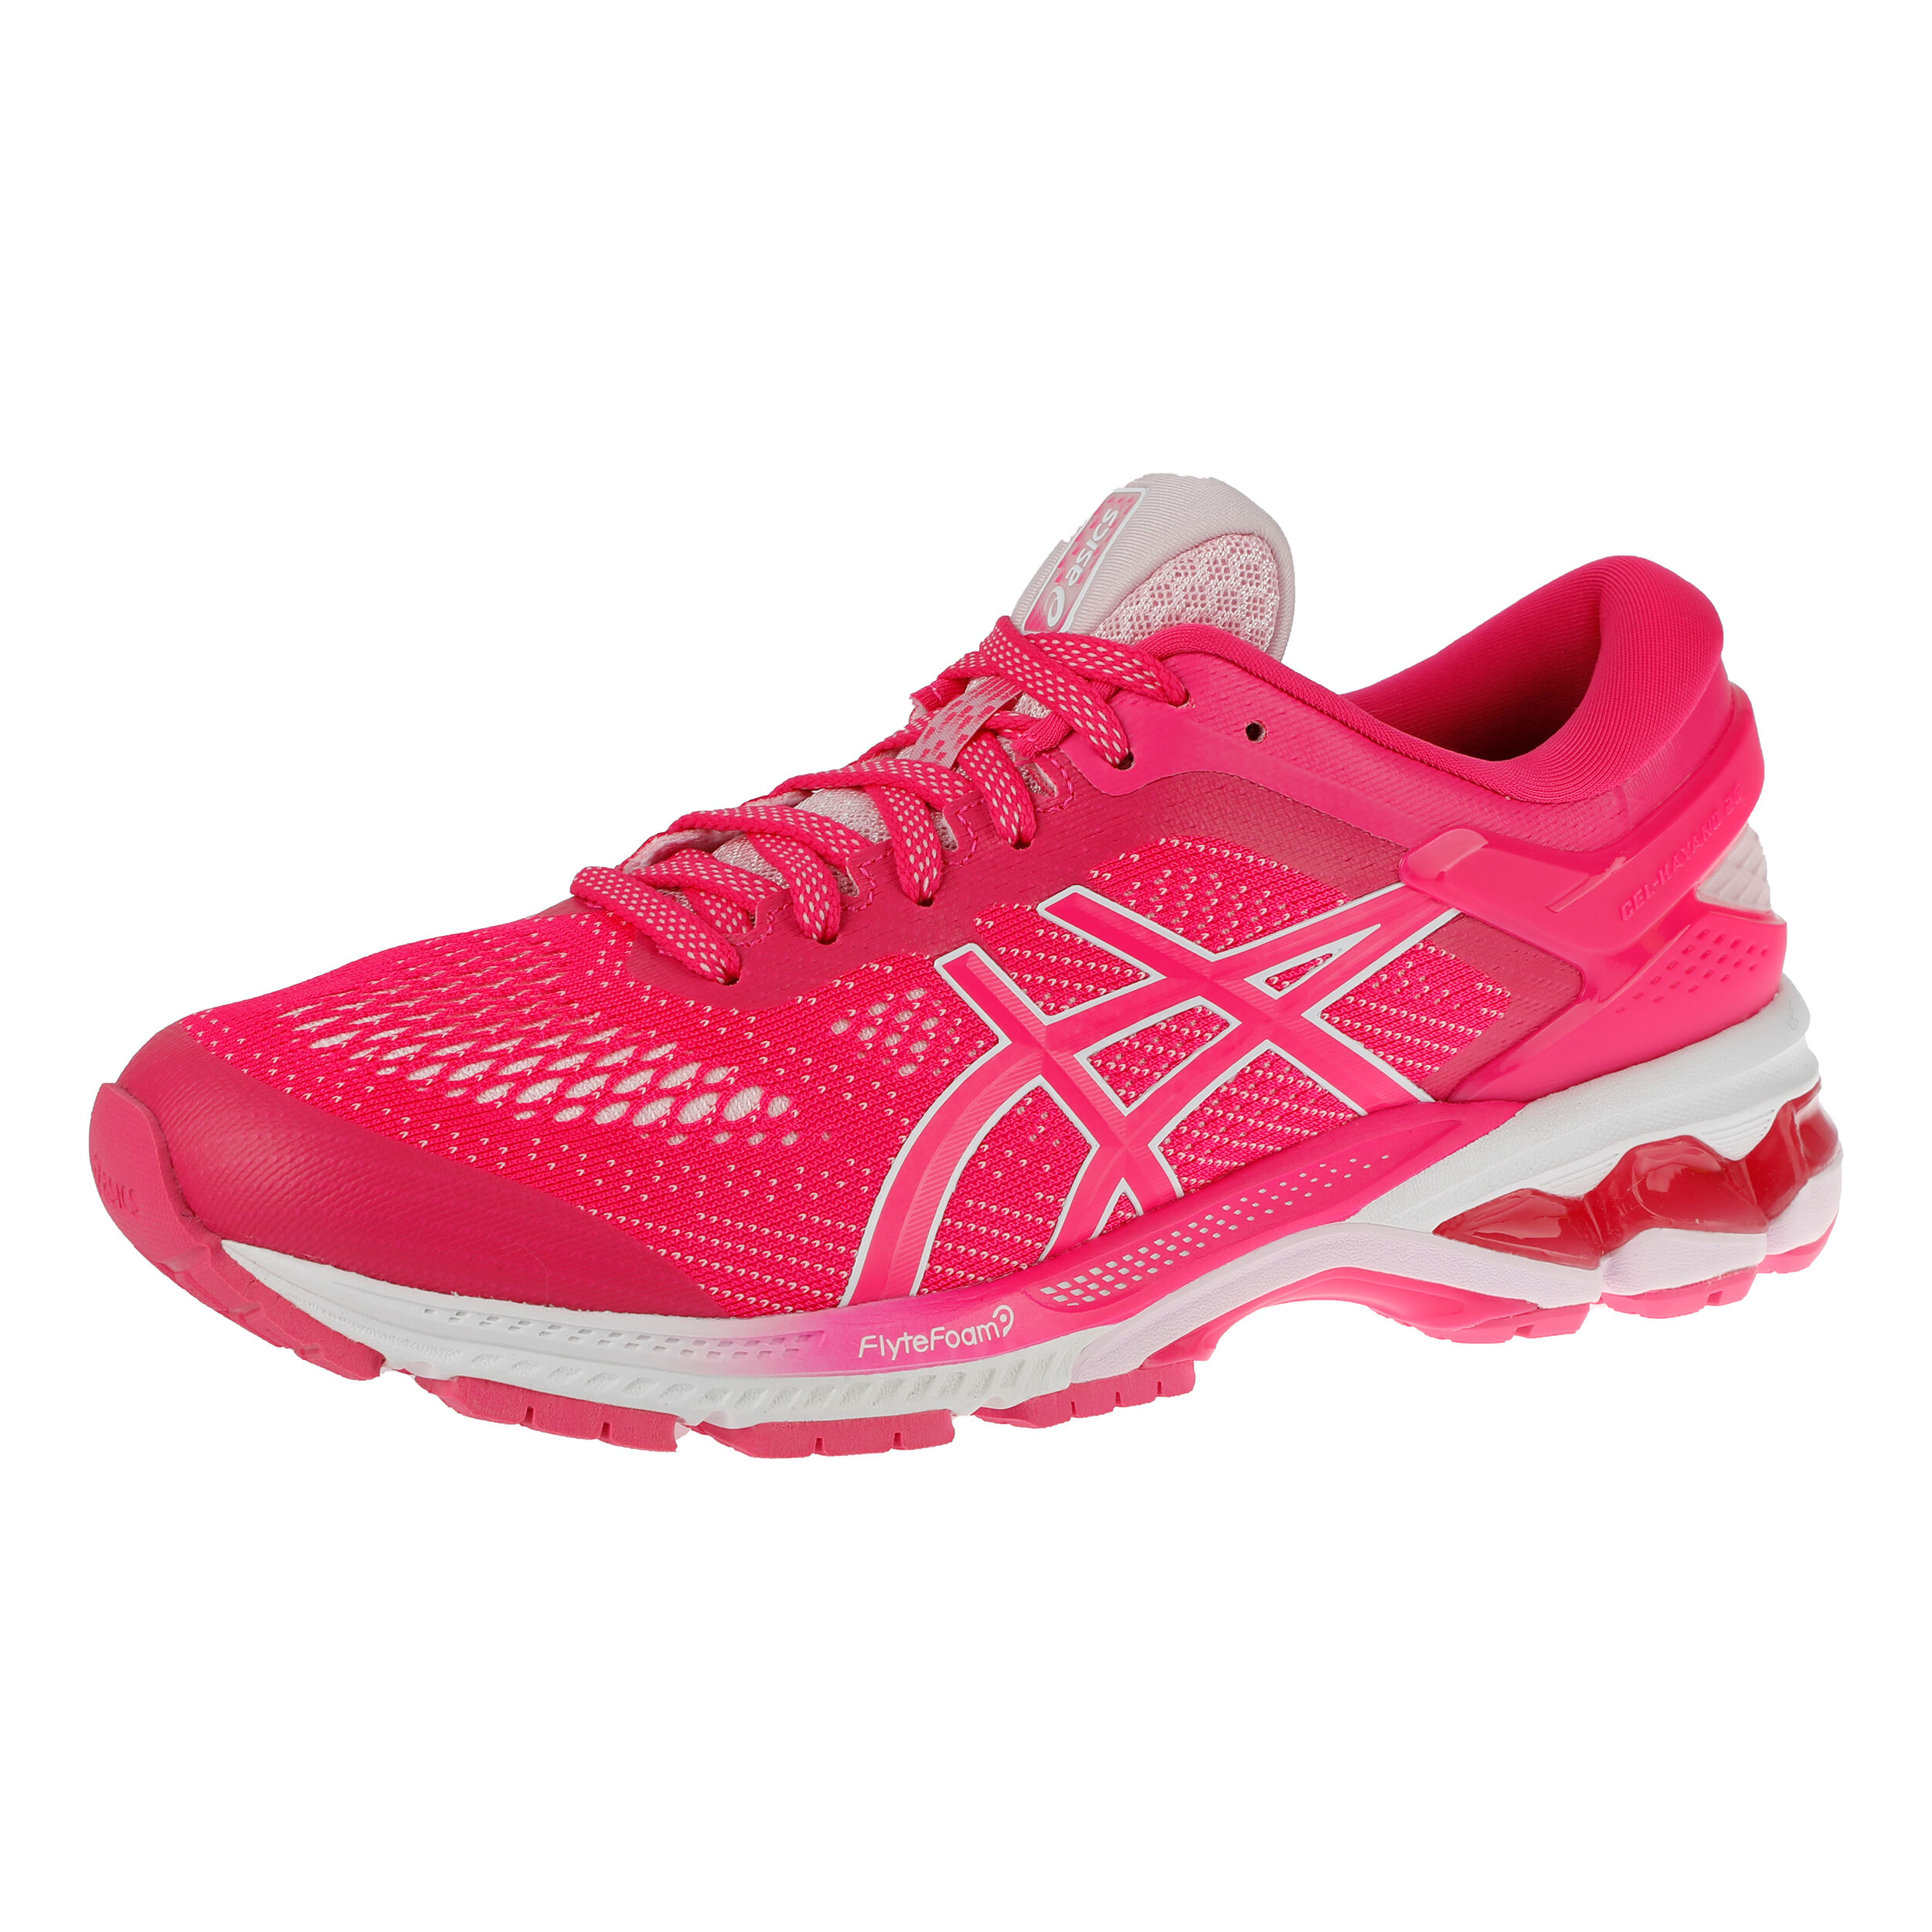 buy Asics Gel-Kayano 26 Stability Running Shoe Women - Pink ...